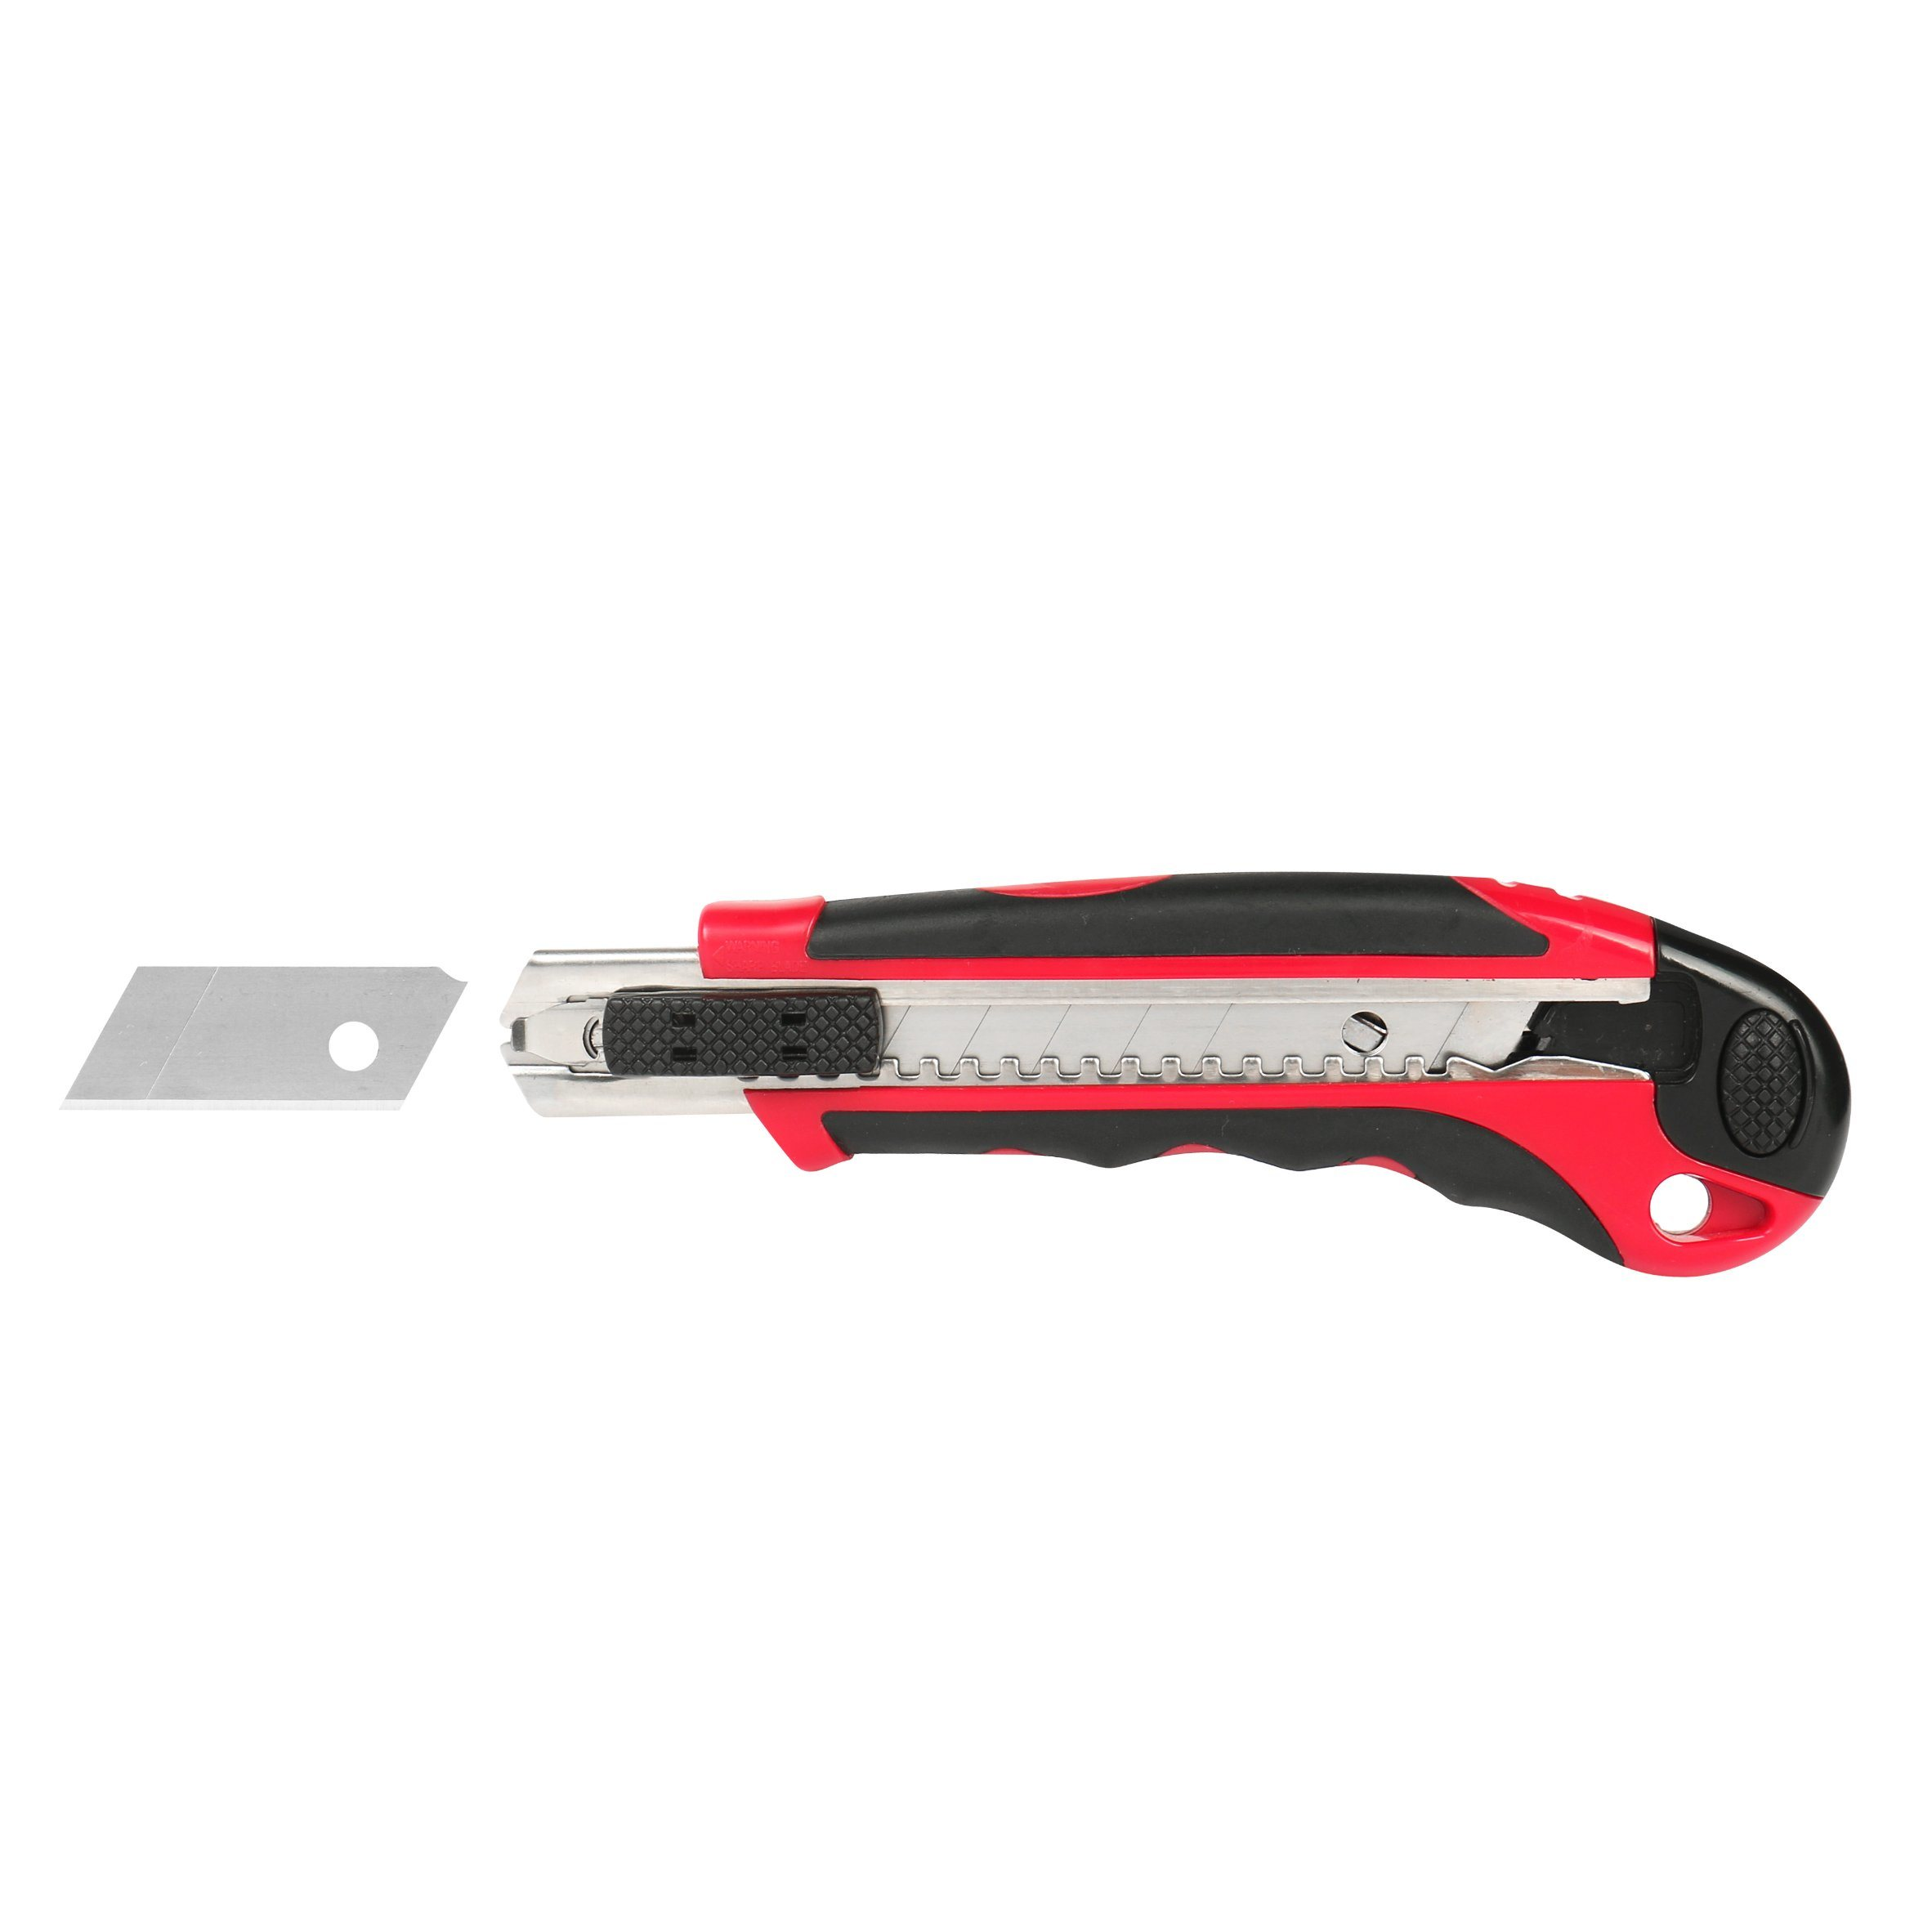 18mm Snap off Blade Auto Loading Cutter Knife